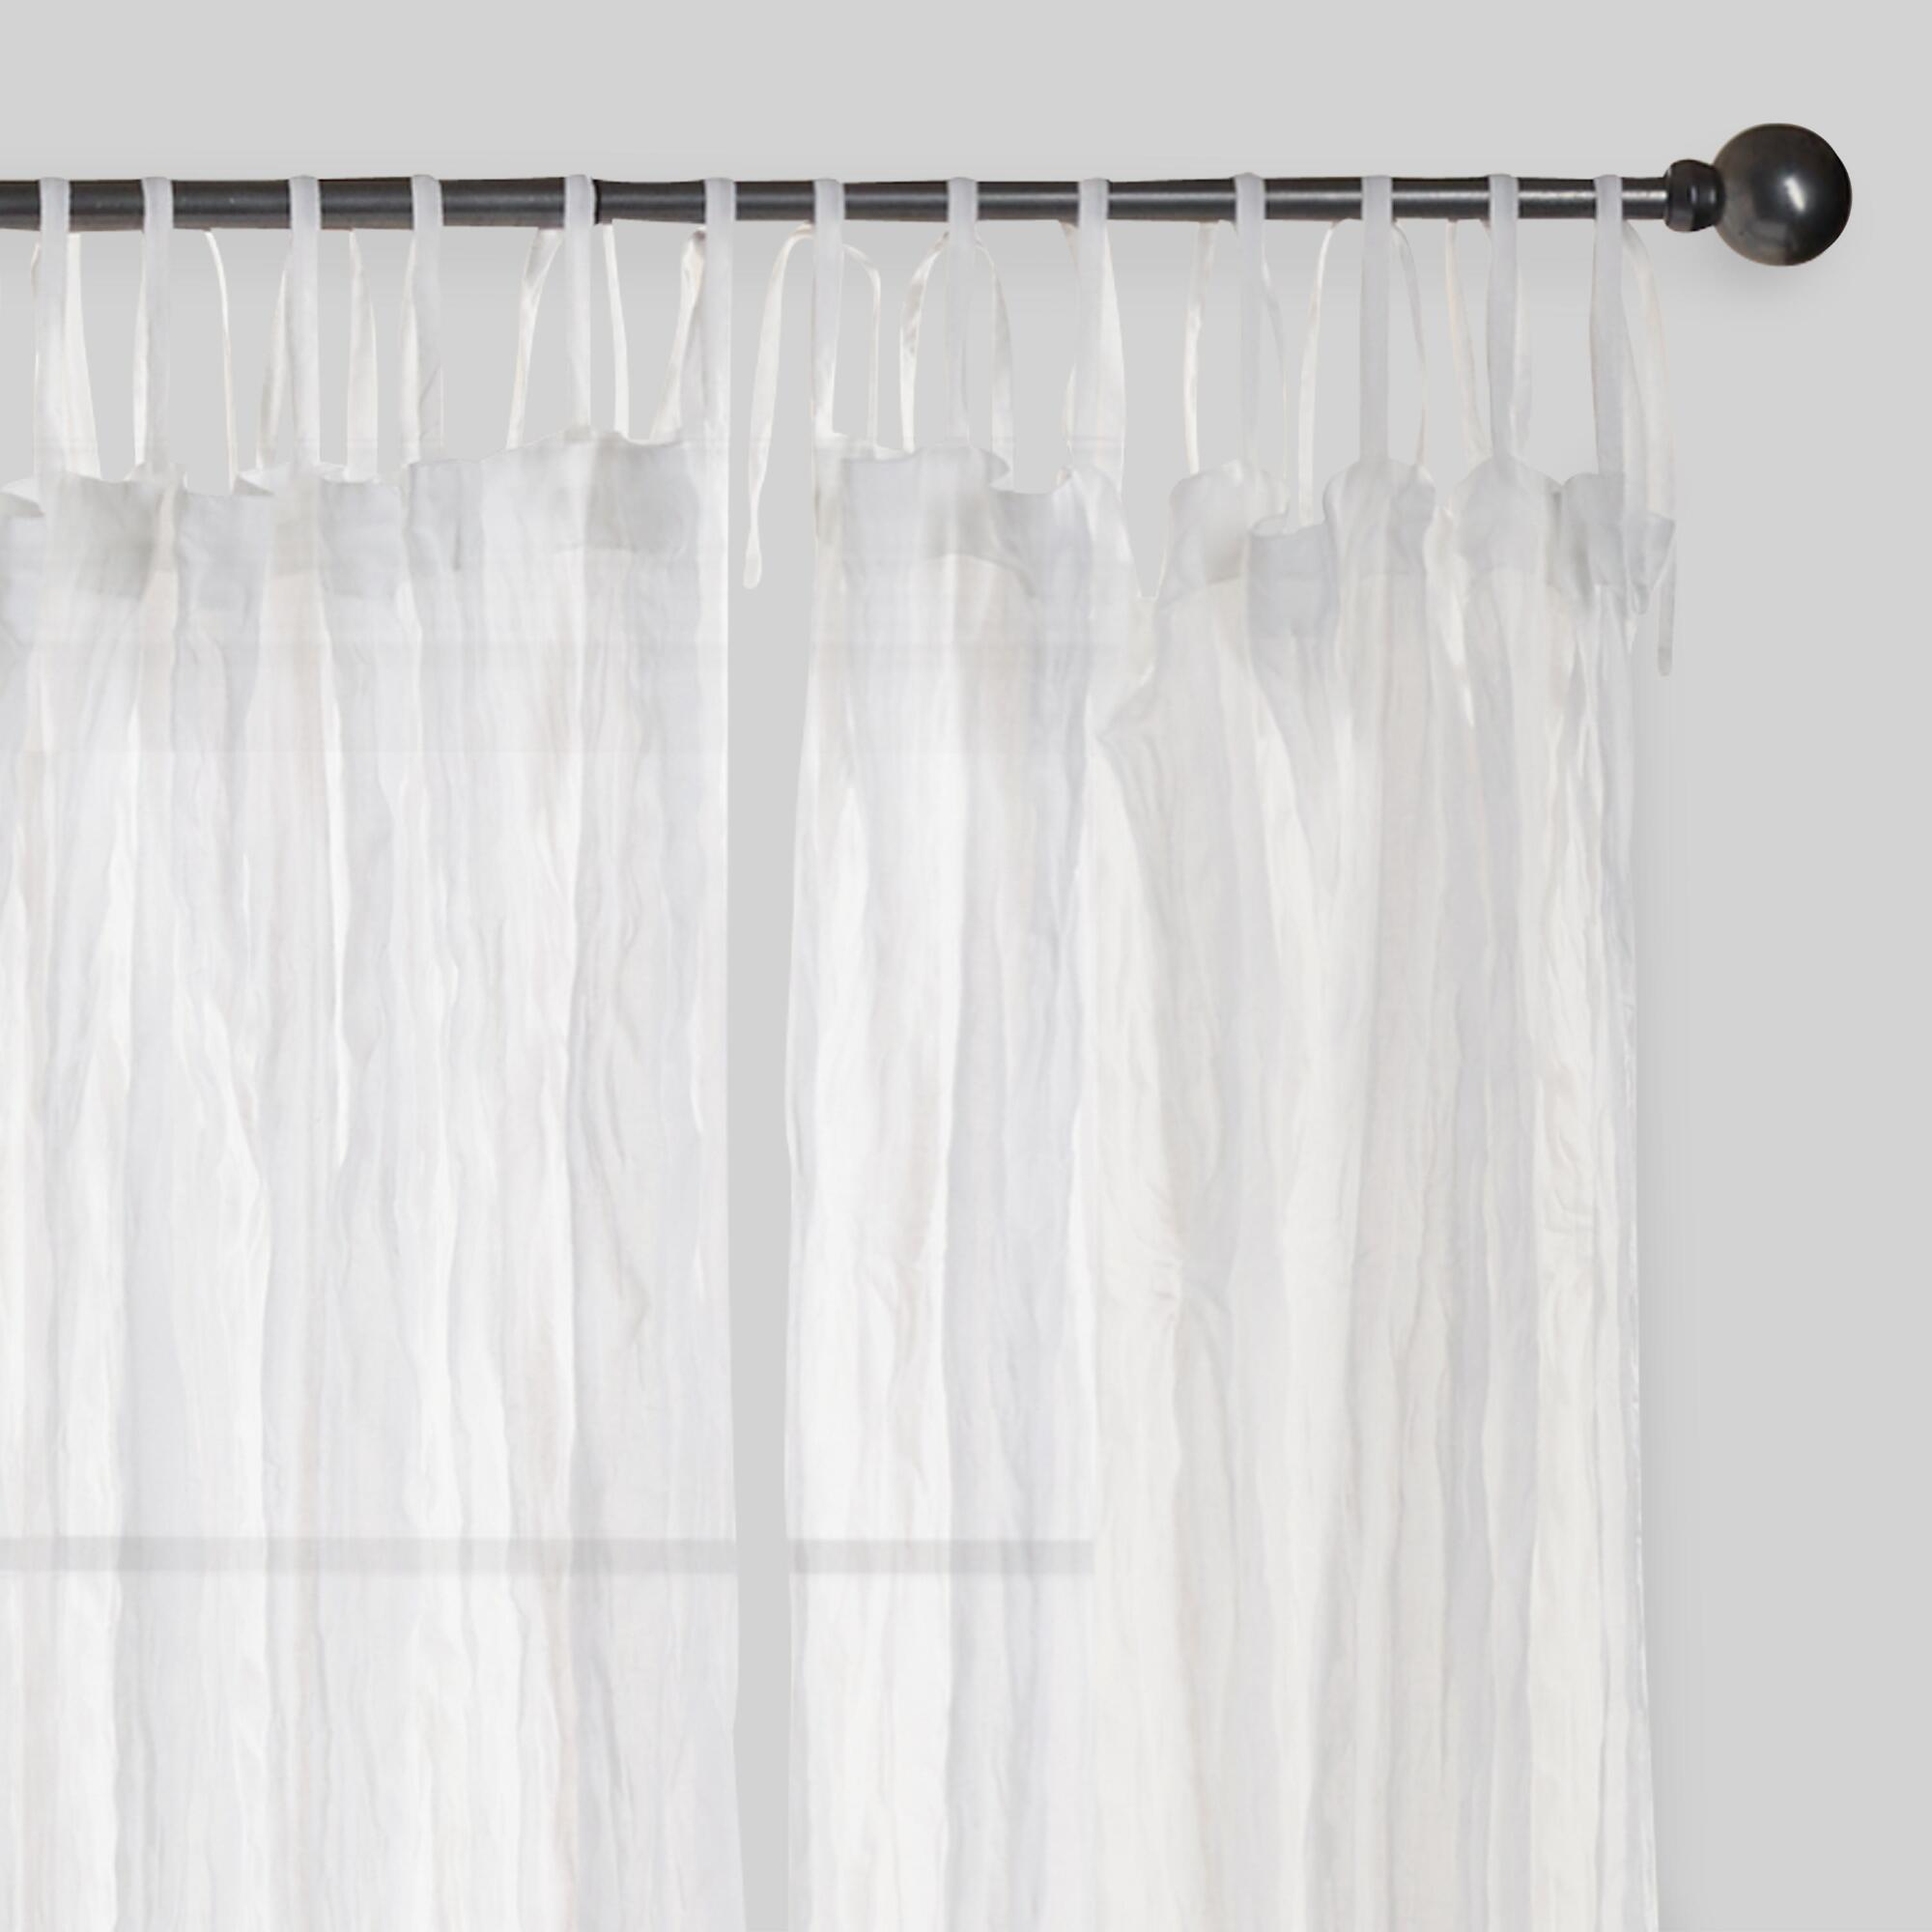 White Crinkle Sheer Voile Cotton Curtains Set Of 2